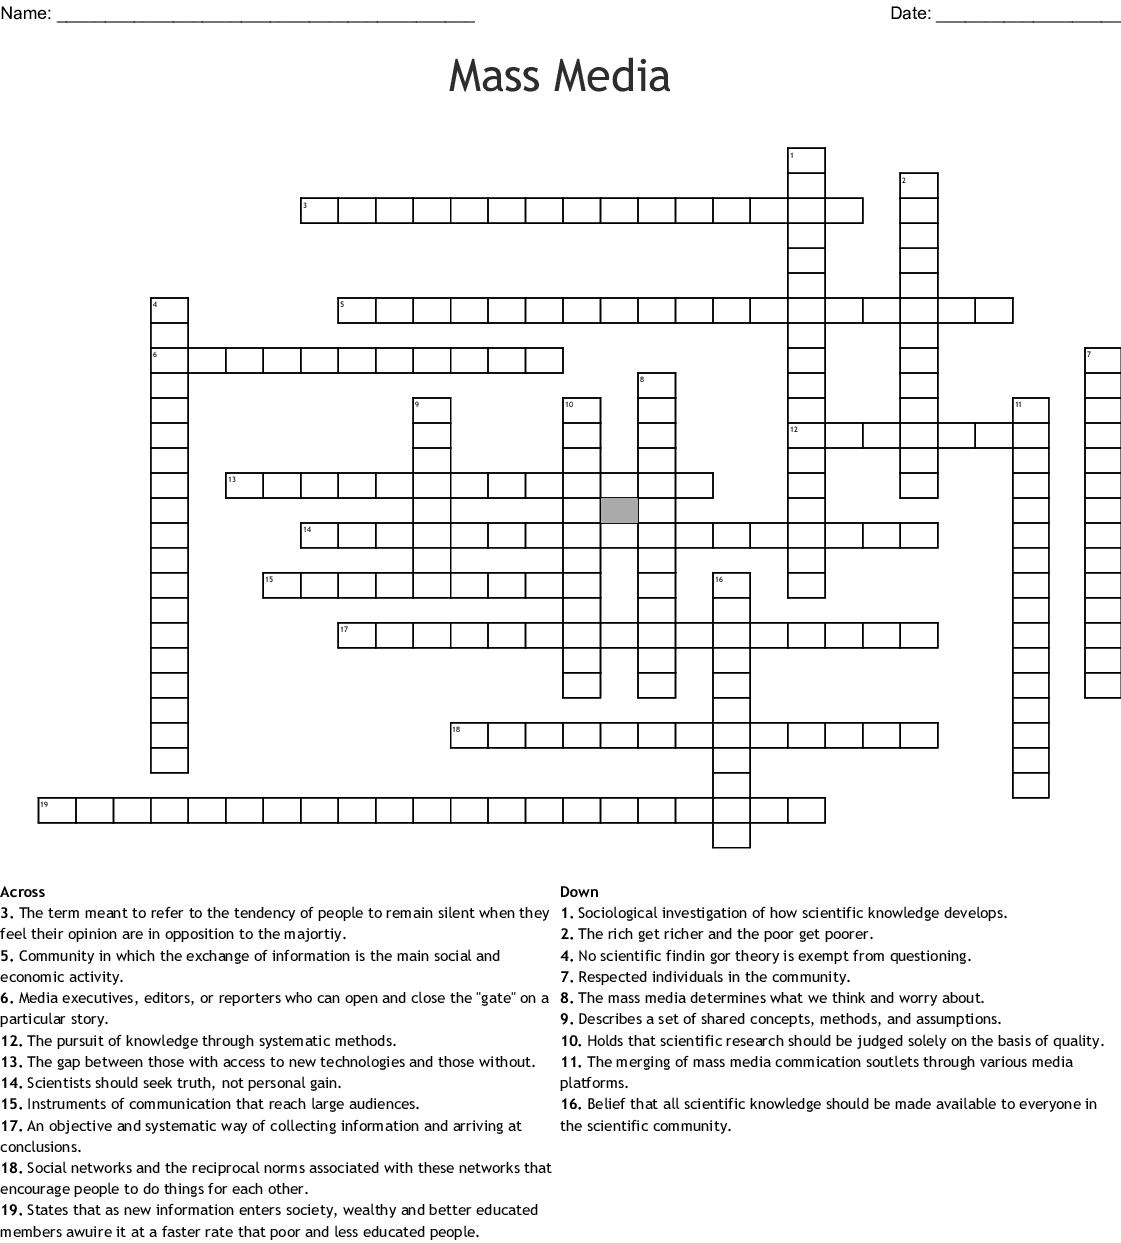 Chapter 7 Terms Part 1 Crossword